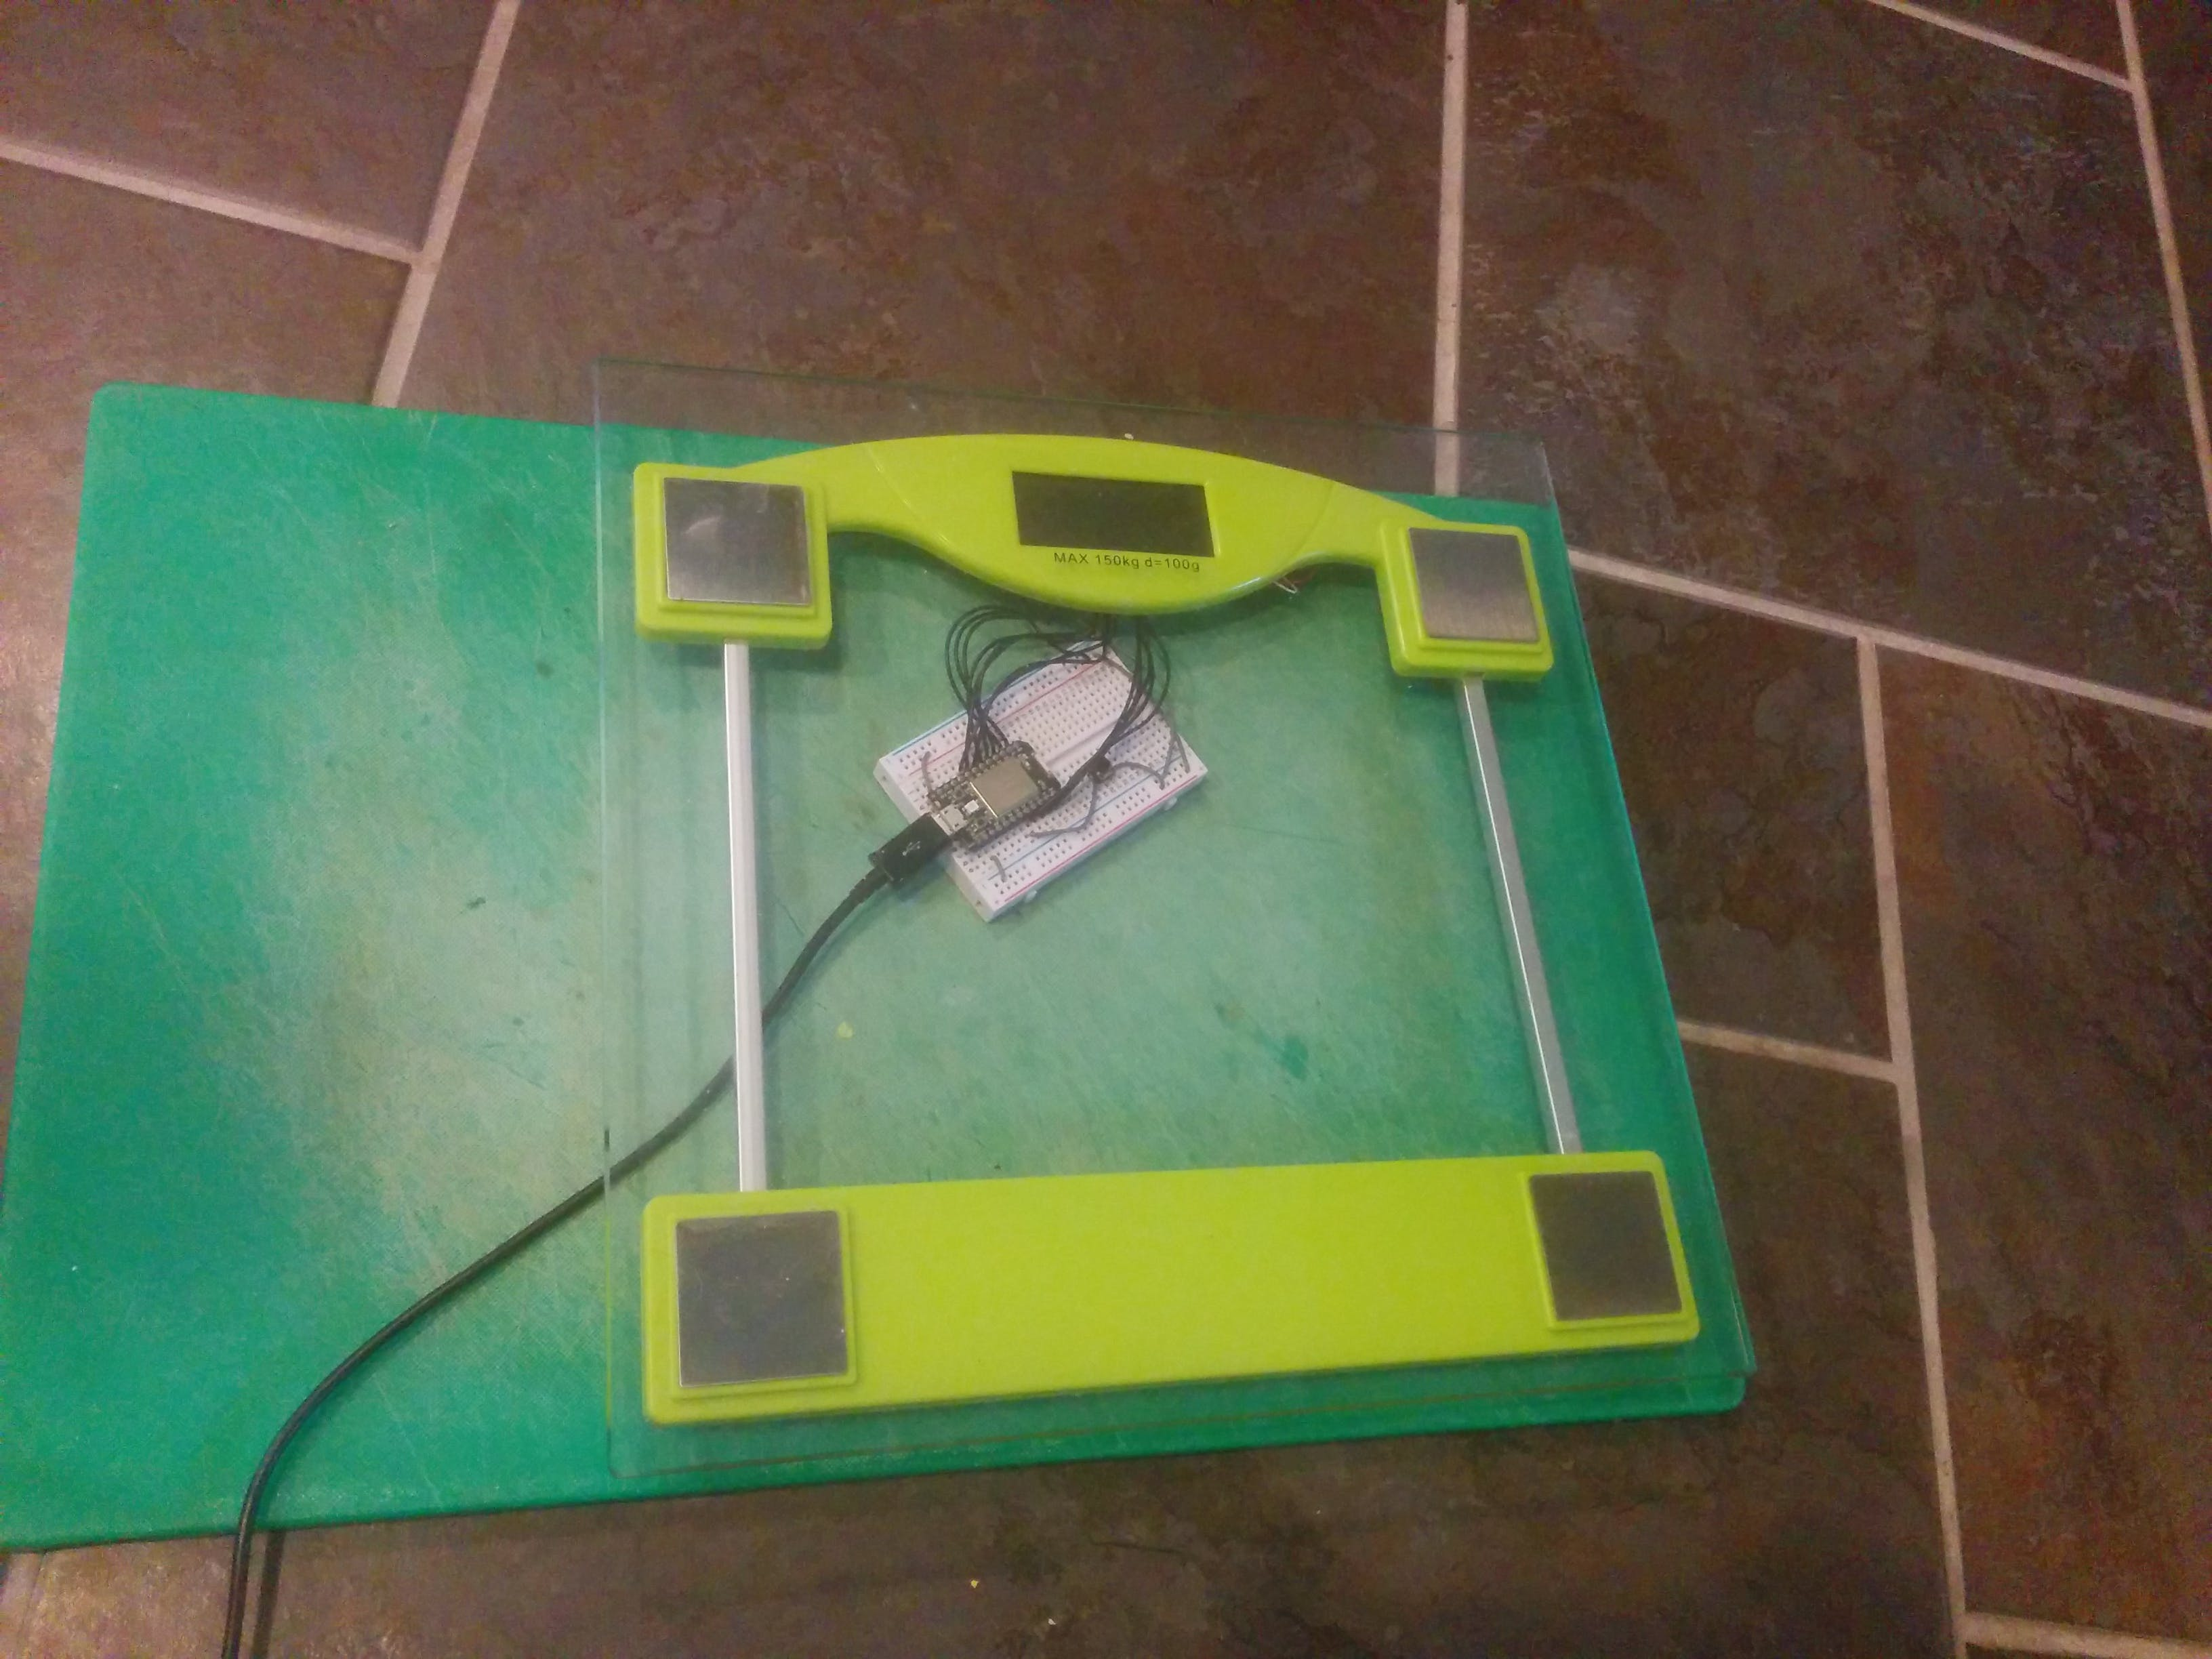 Internet Connected Bathroom Scales